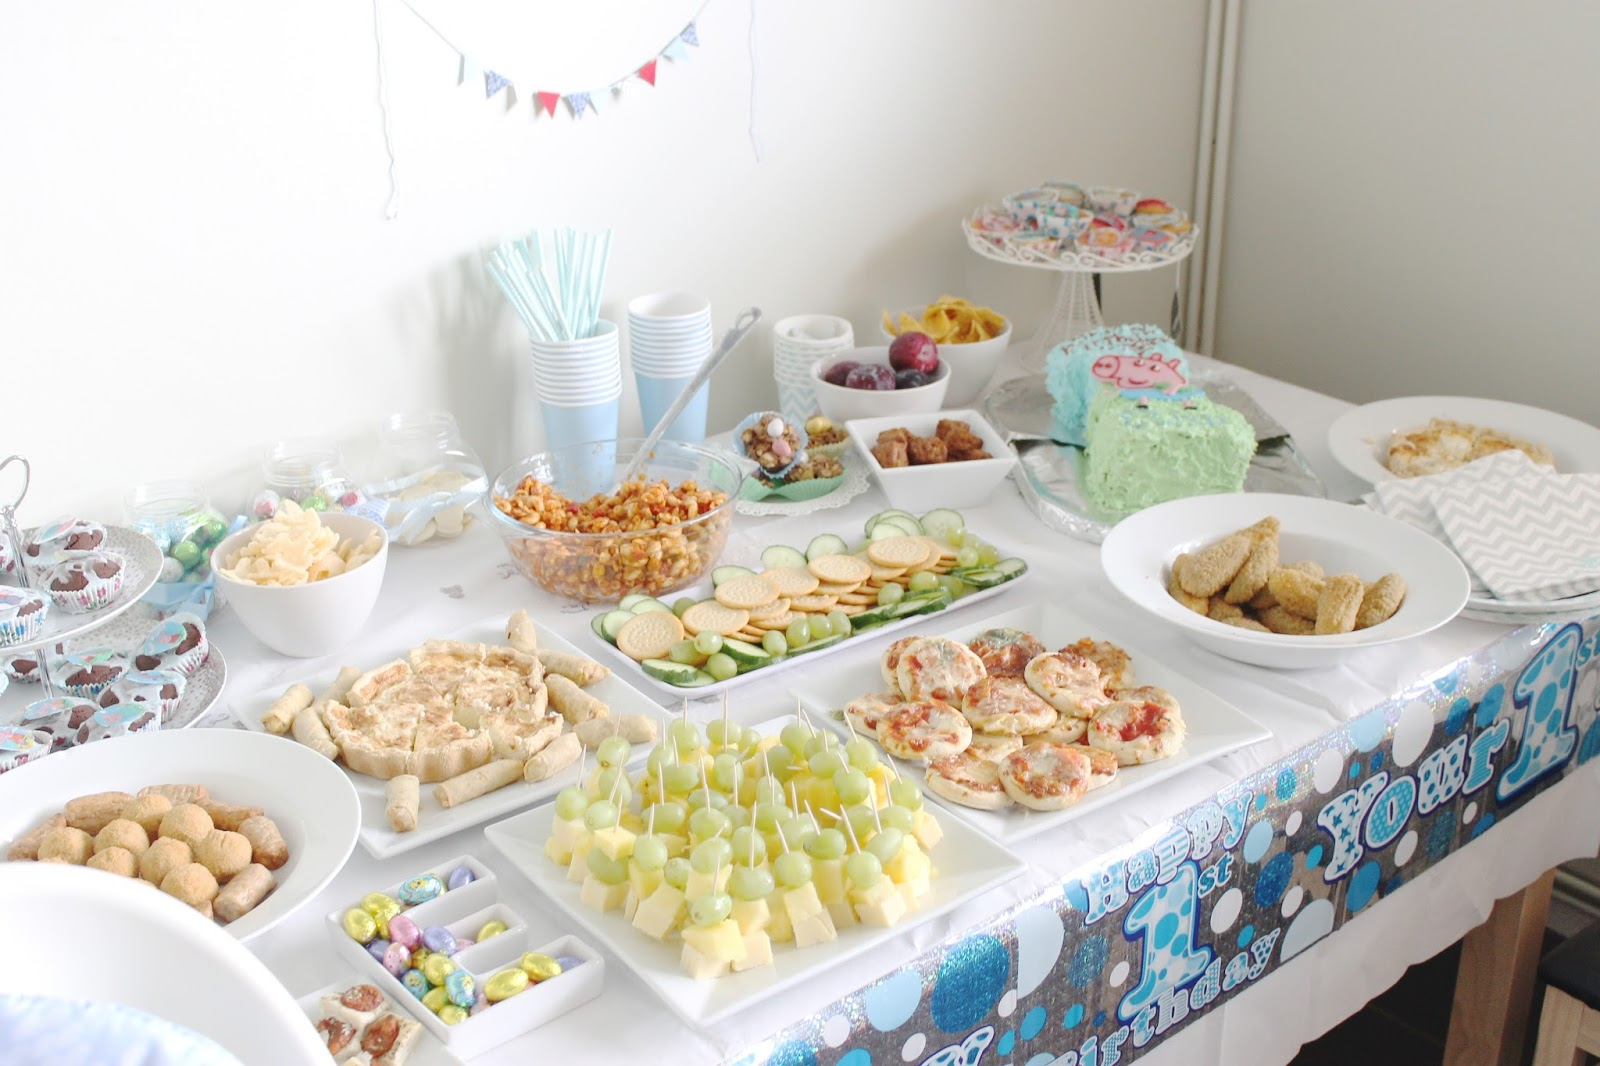 Ethans 1st Birthday: The Party & Decor! - Bump to Baby & Beyond Blog ...